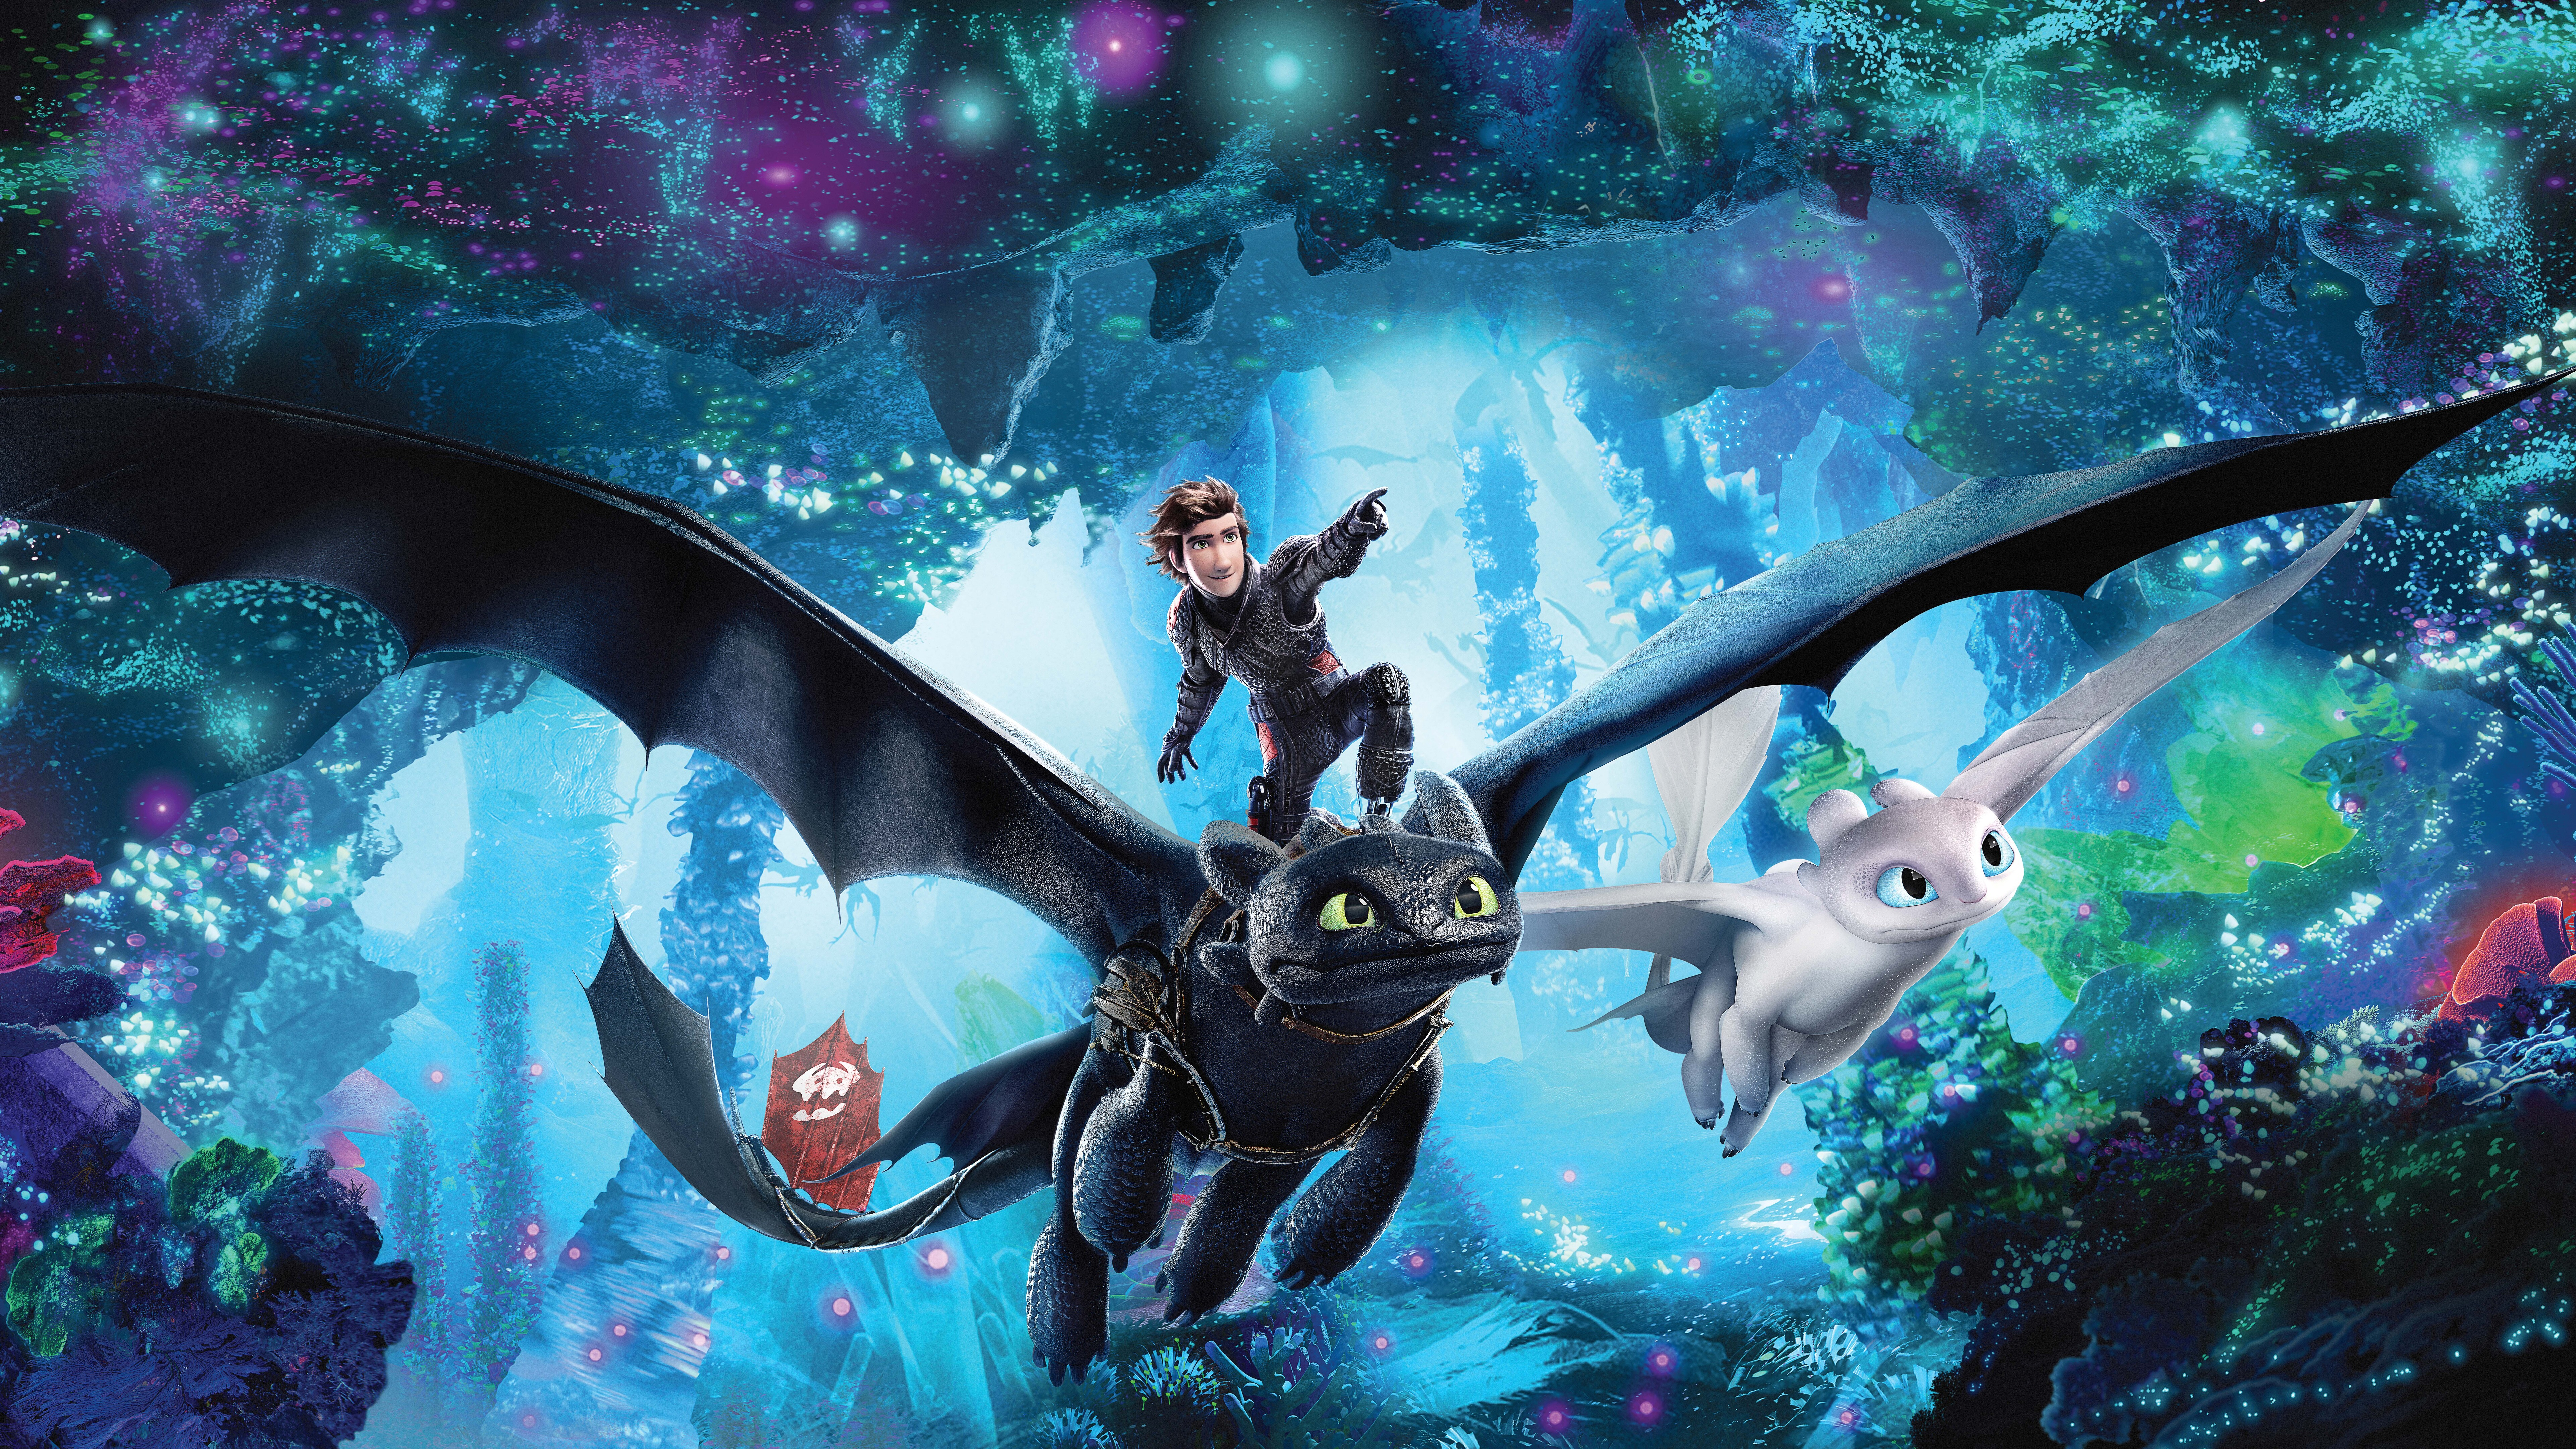 7680x4320 How To Train Your Dragon The Hidden World 12k